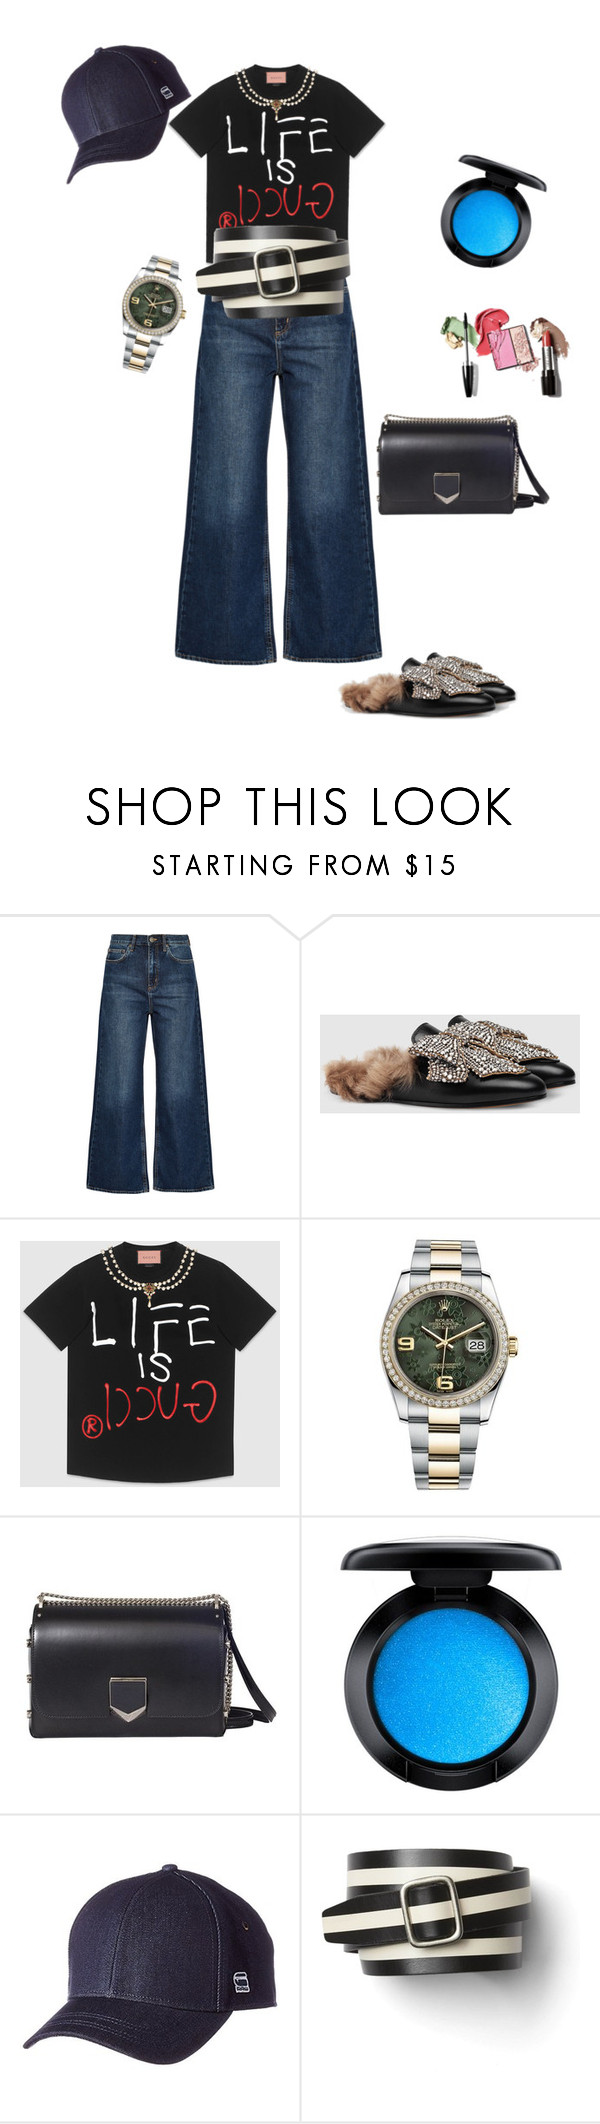 """Untitled #4901"" by ayse-sedetmen ❤ liked on Polyvore featuring M.i.h Jeans, Gucci, Rolex, Jimmy Choo, MAC Cosmetics, G-Star Raw and Gap"